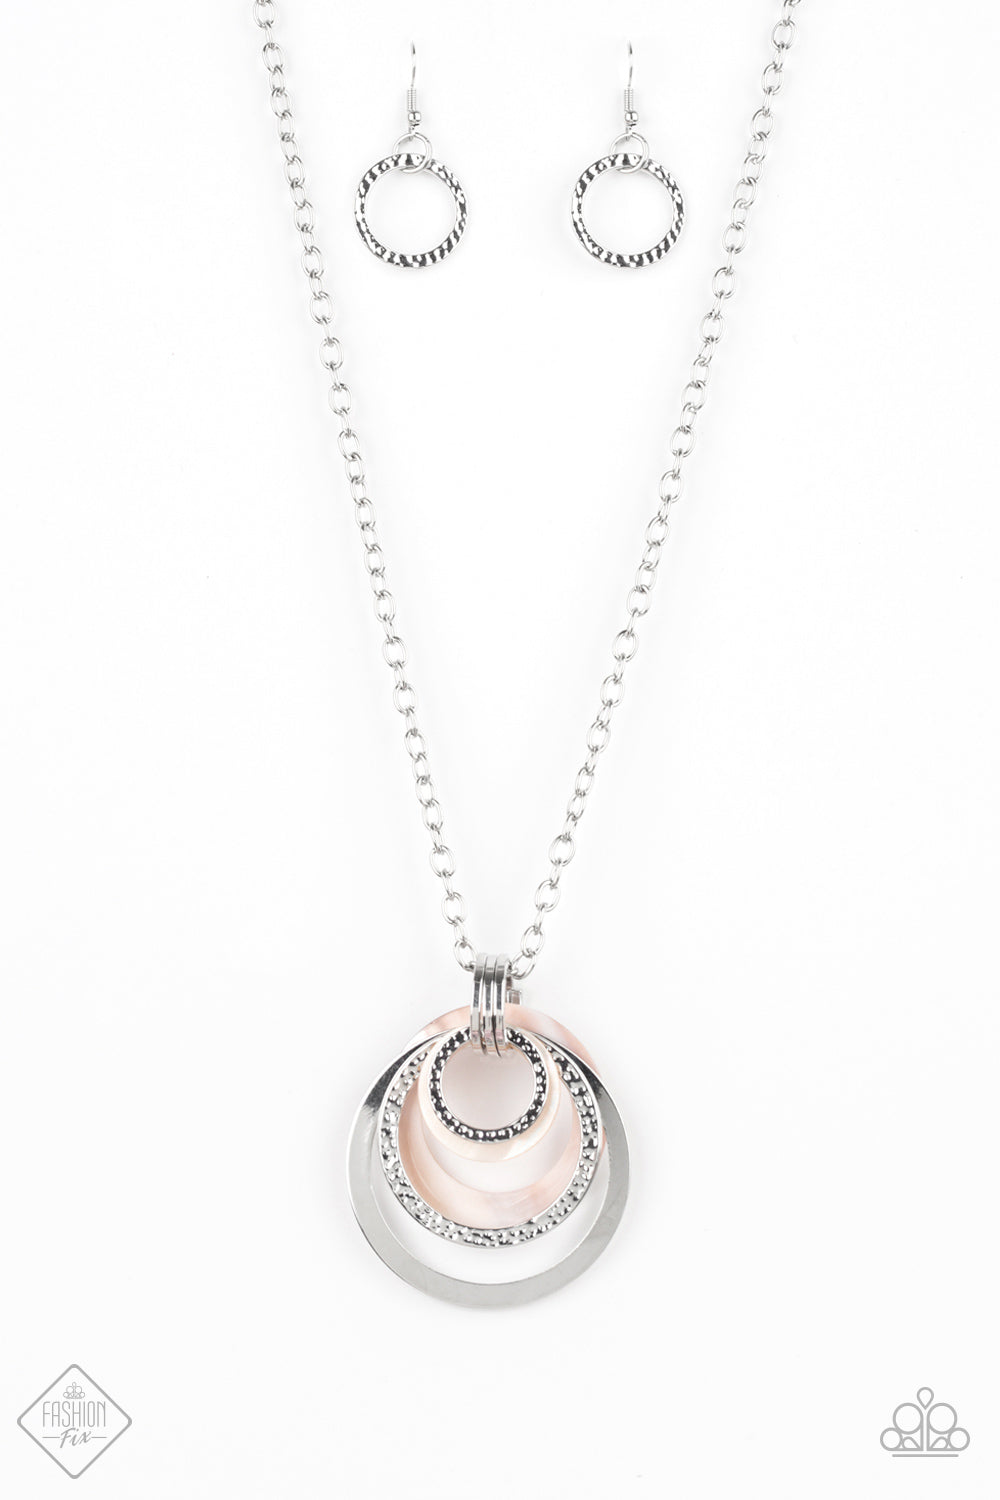 Paparazzi Accessories - Coast Coasting - Silver Necklace Set - JMJ Jewelry Collection